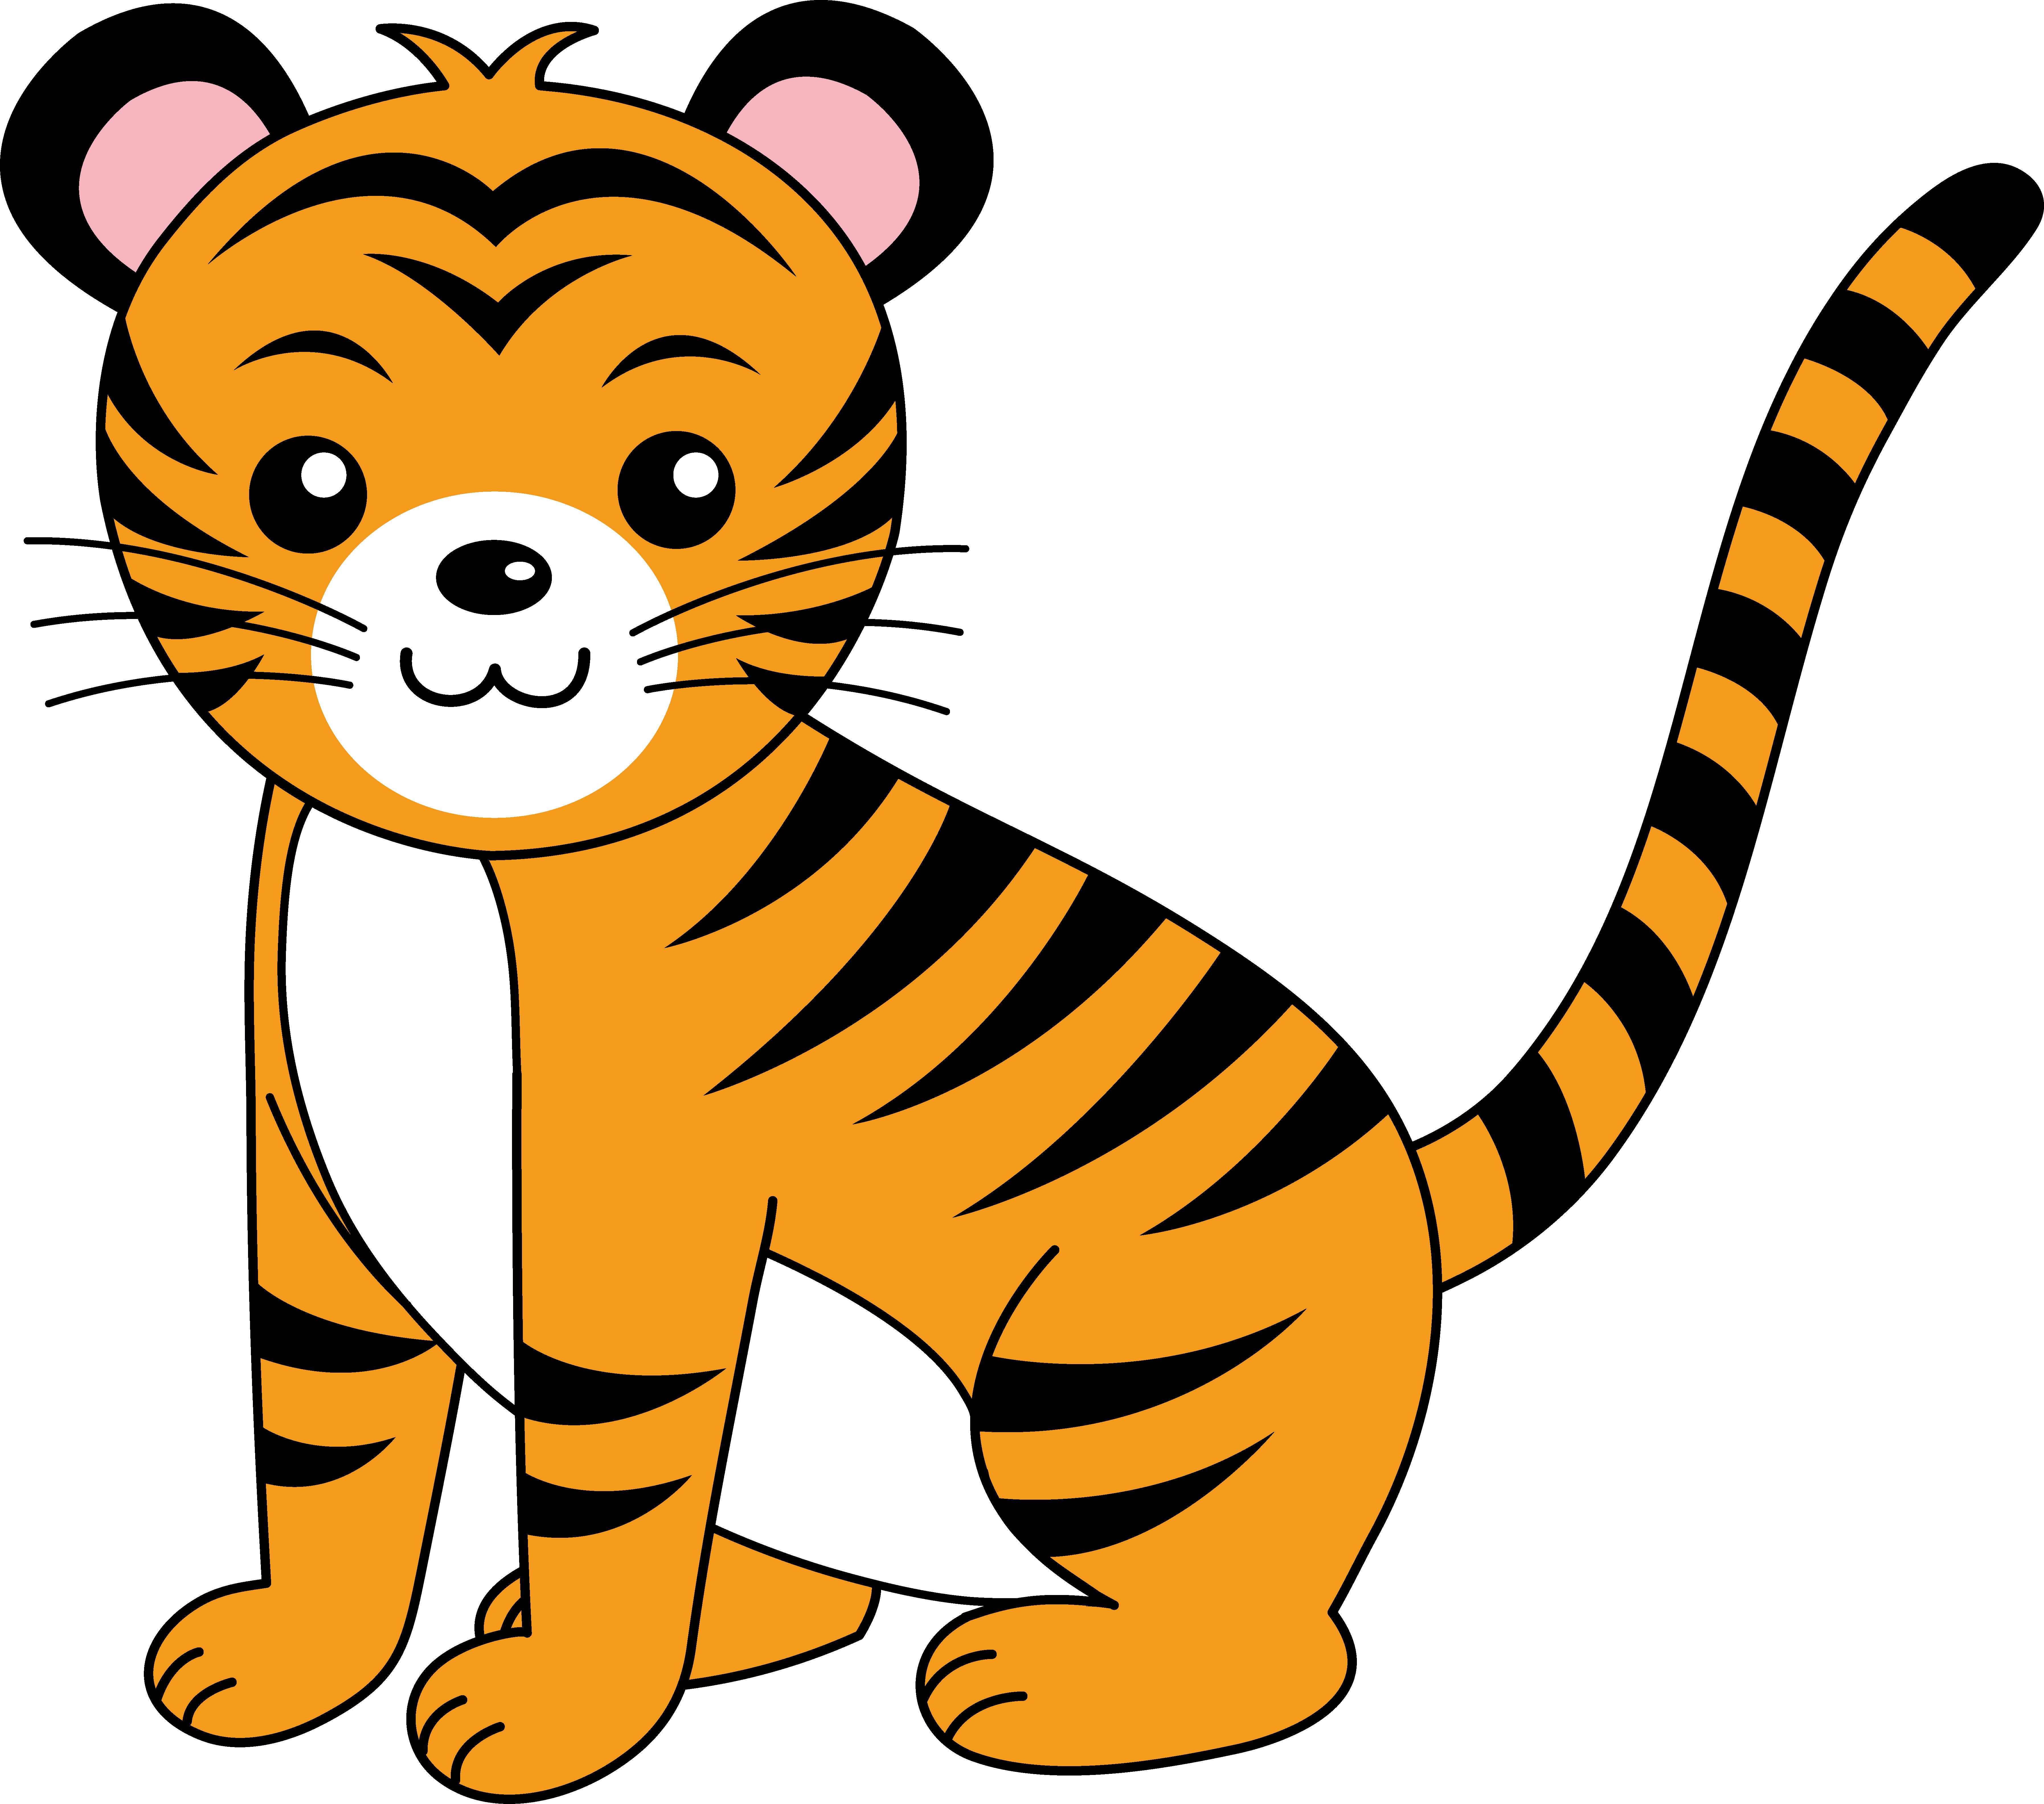 Tiger Cartoon Image